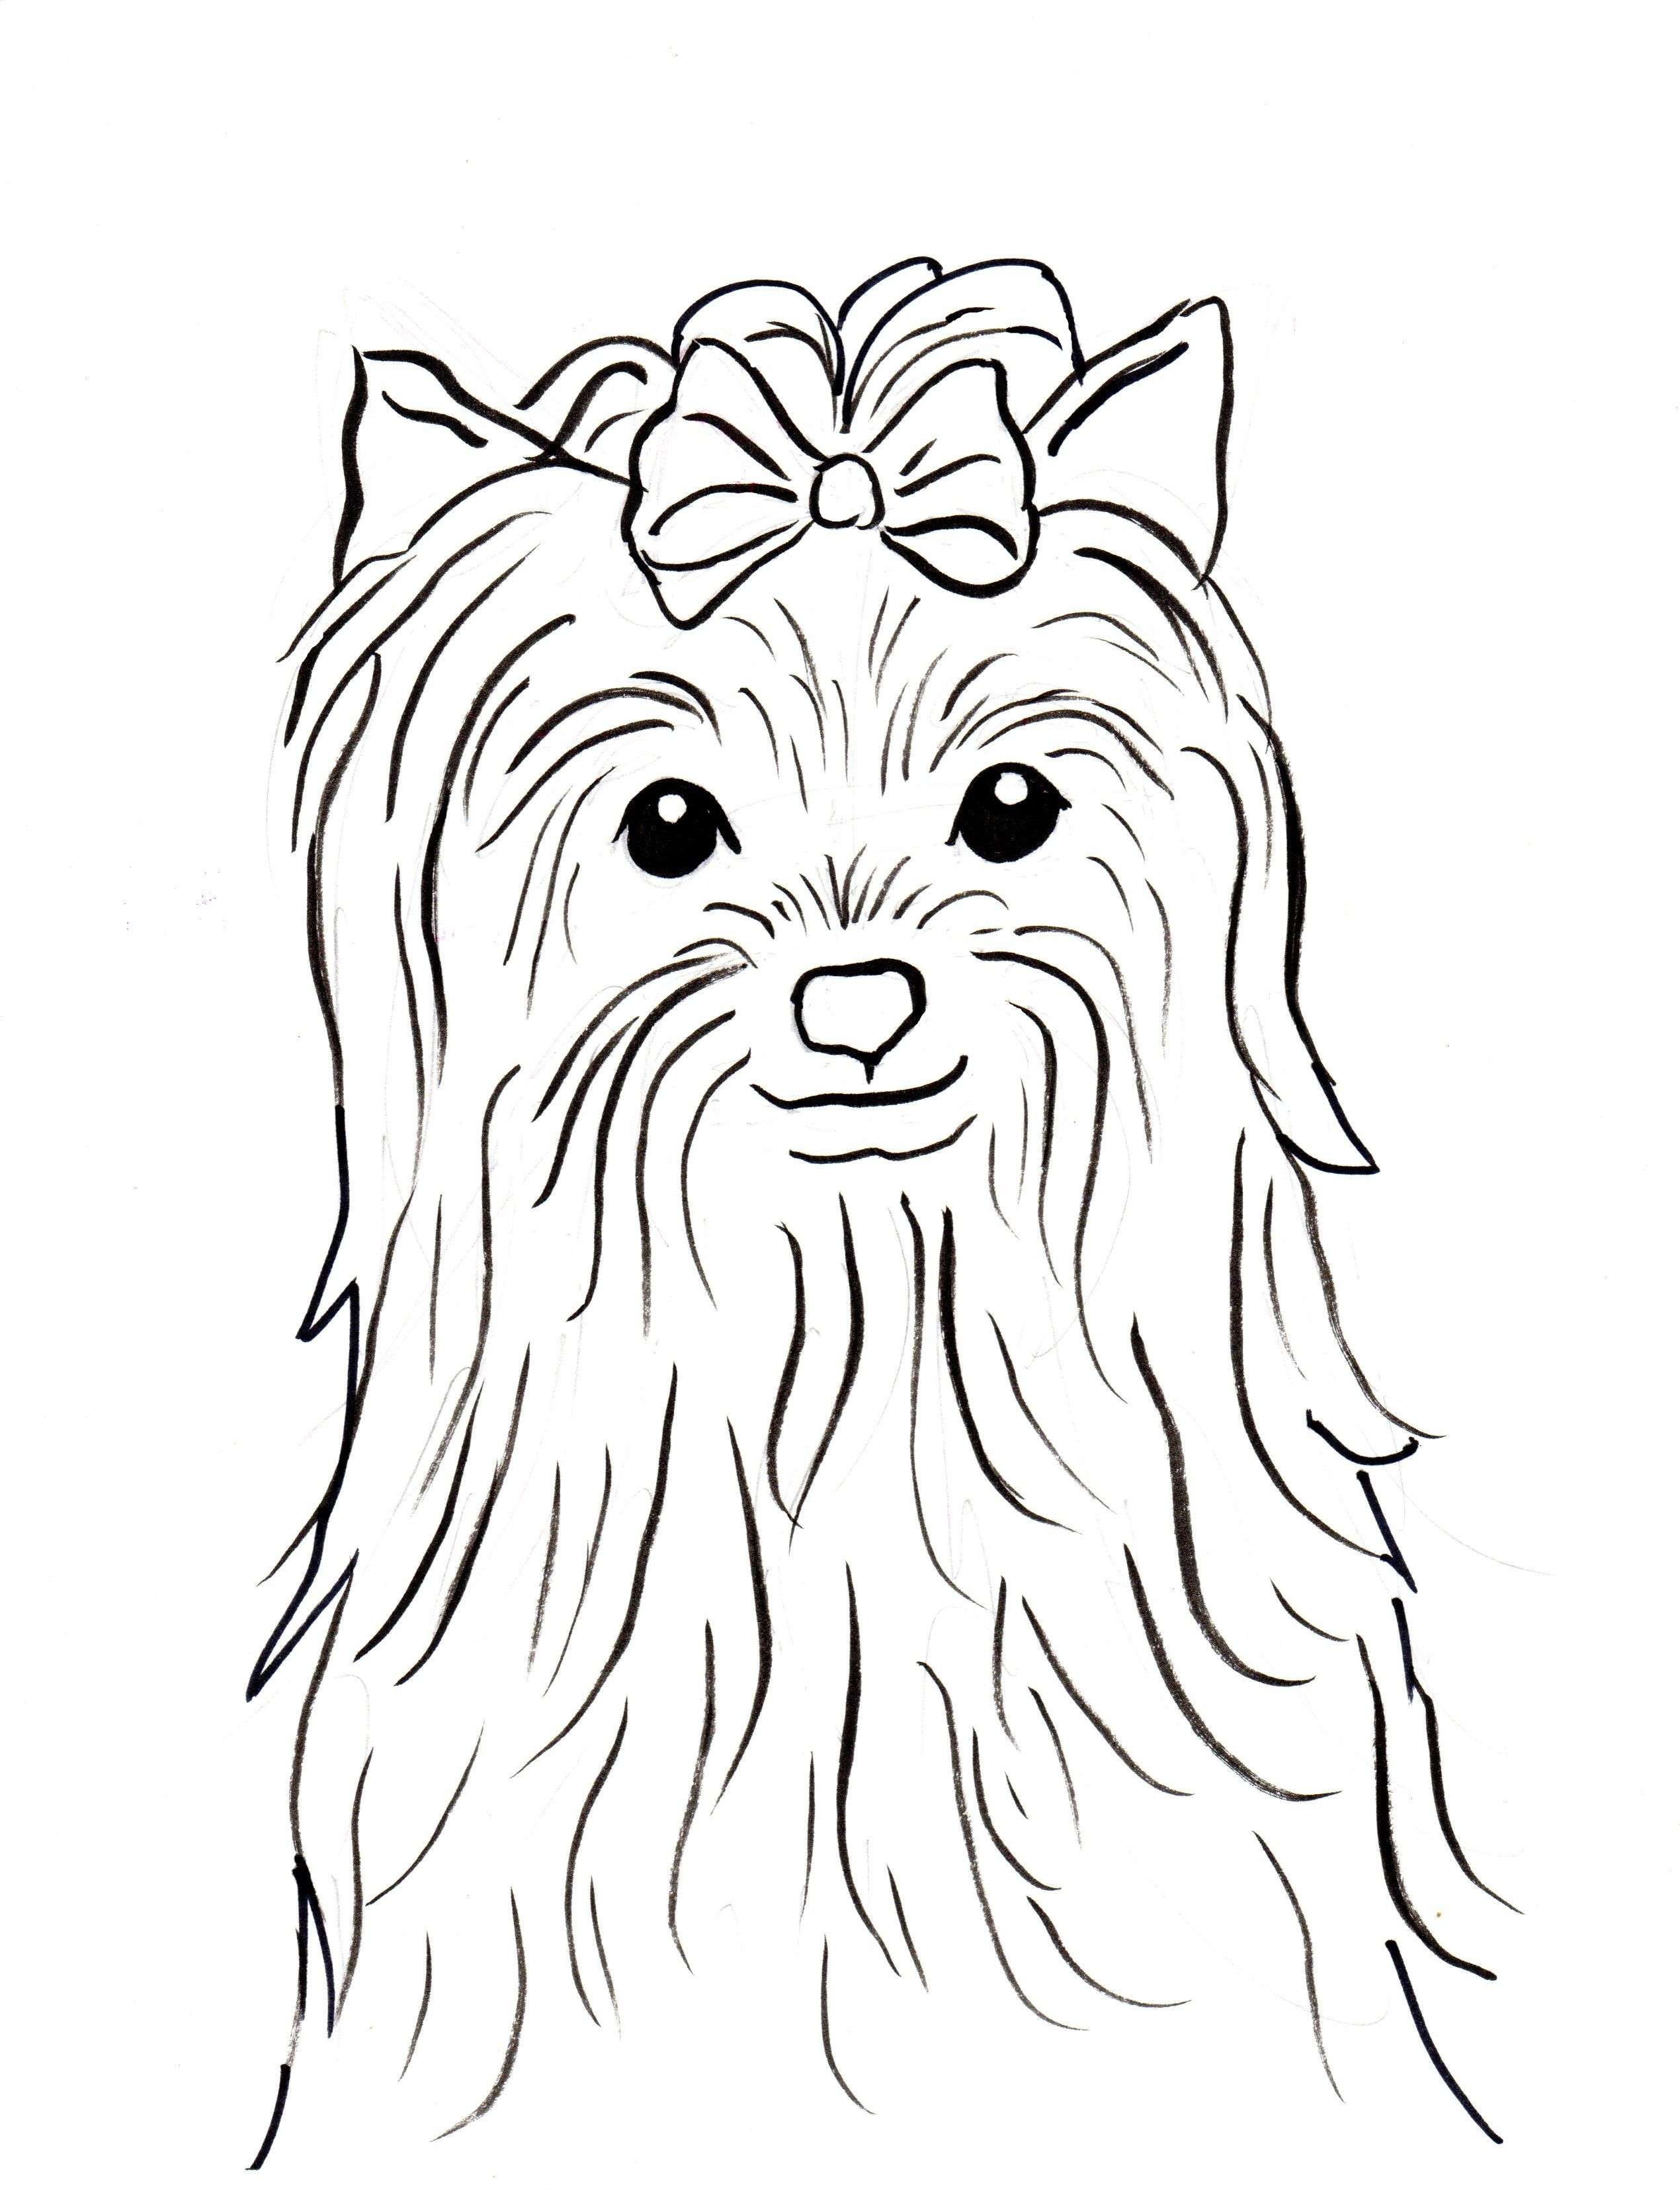 Yorkshire Terrier Coloring Page Samantha Bell Sketch Coloring Page